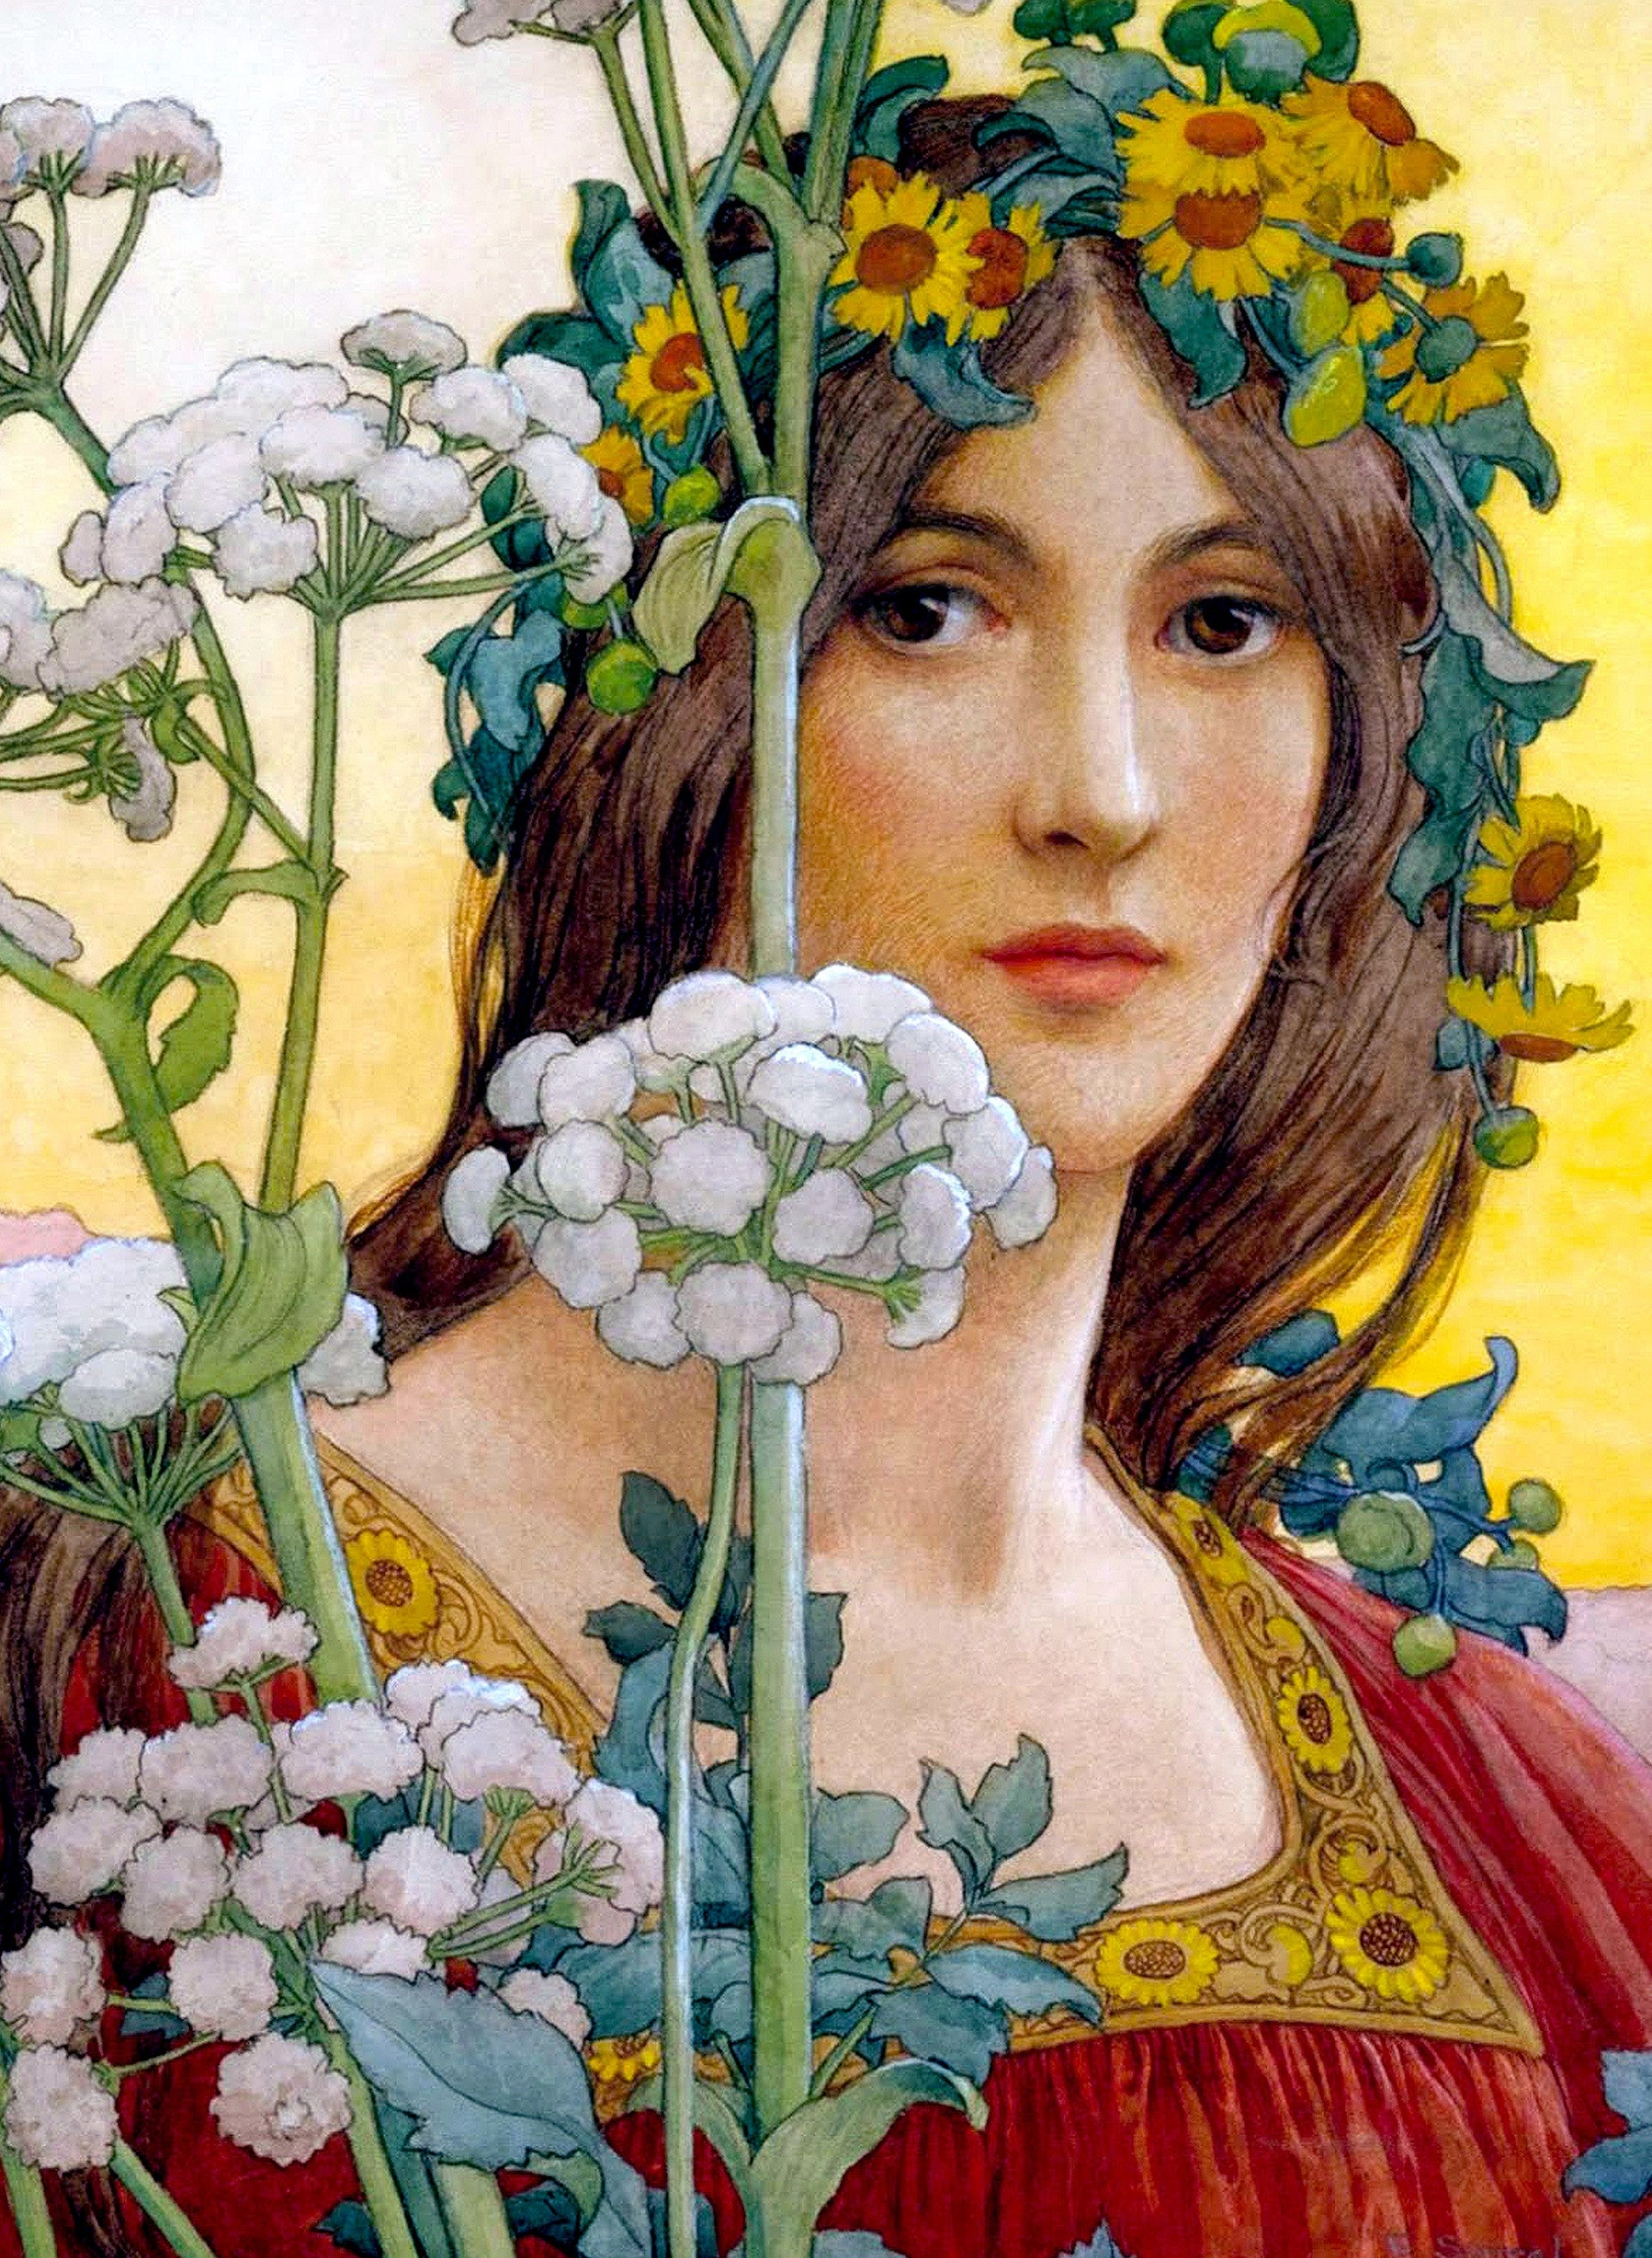 Our Lady Of The Cow Parsley 367 Pieces By Elizabeth Sonrel Wooden Jigsaw Puzzle Nautilus Puzzles Wooden Jigsaw Puzzles For Adults